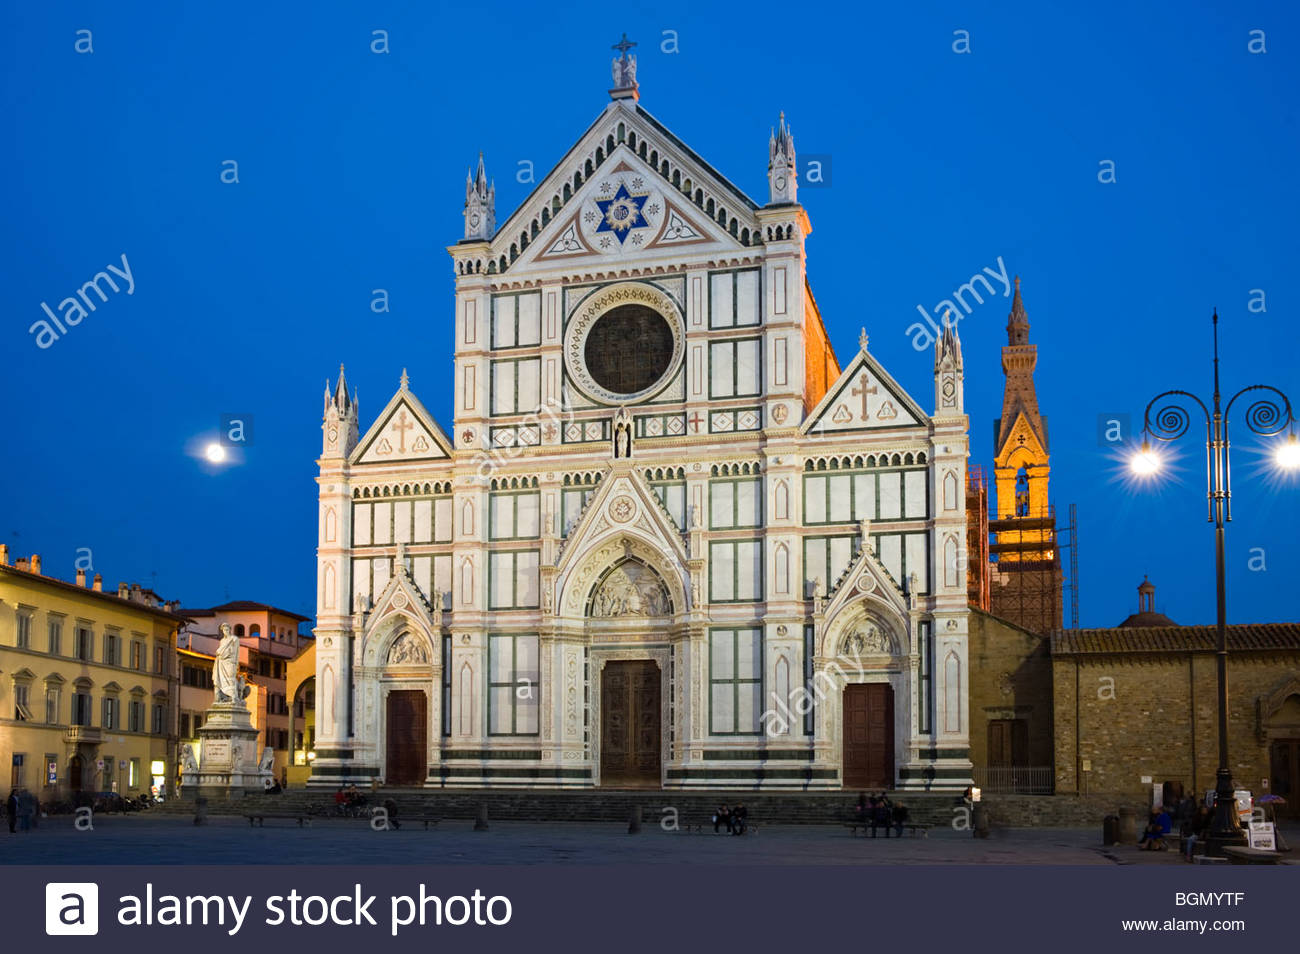 Basilica di Santa Croce, the largest Franciscan church in the world, Florence, Italy. - Stock Image